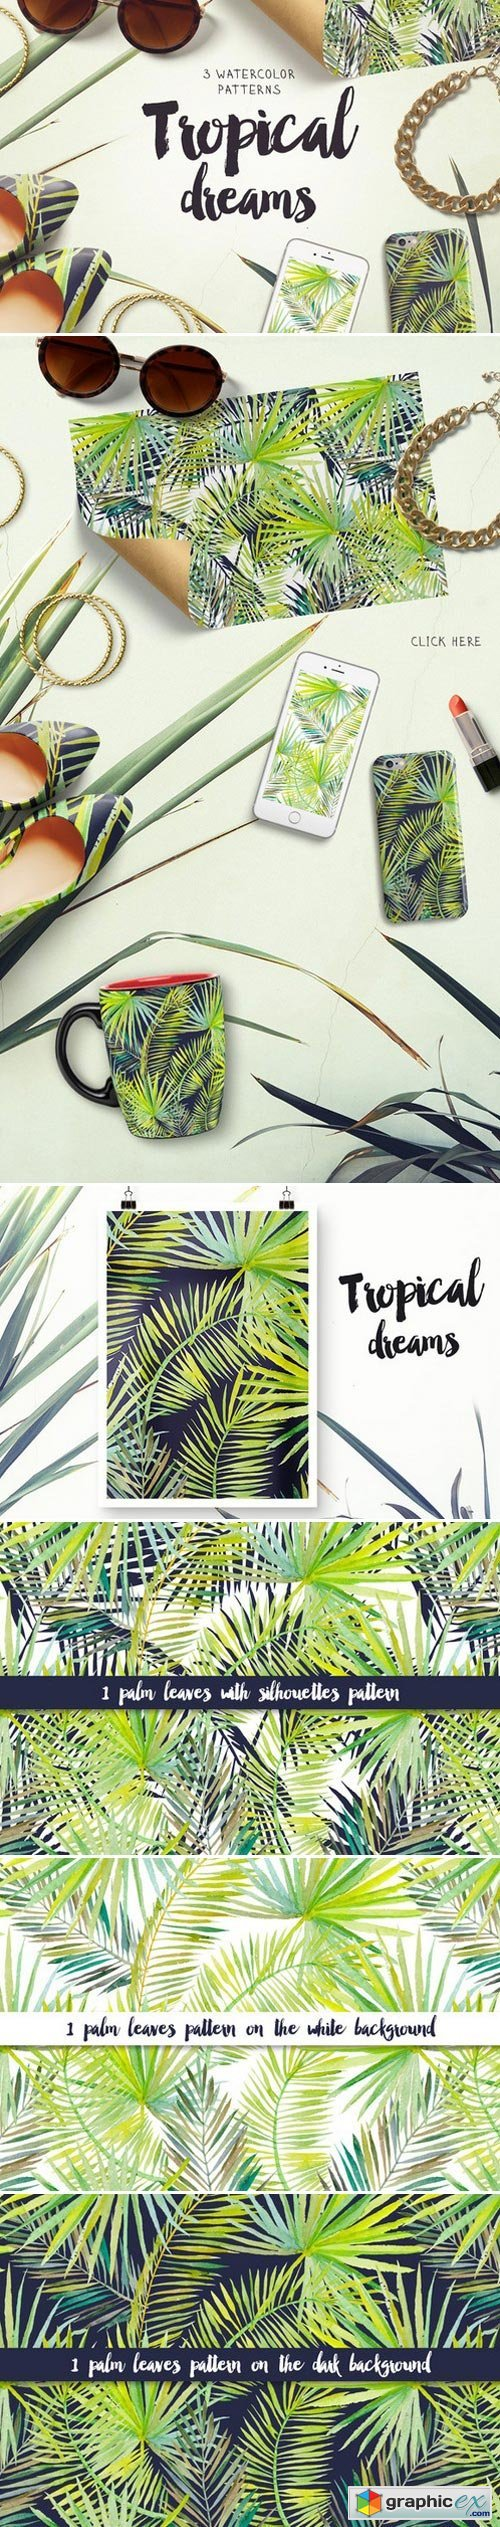 Tropical dreams patterns